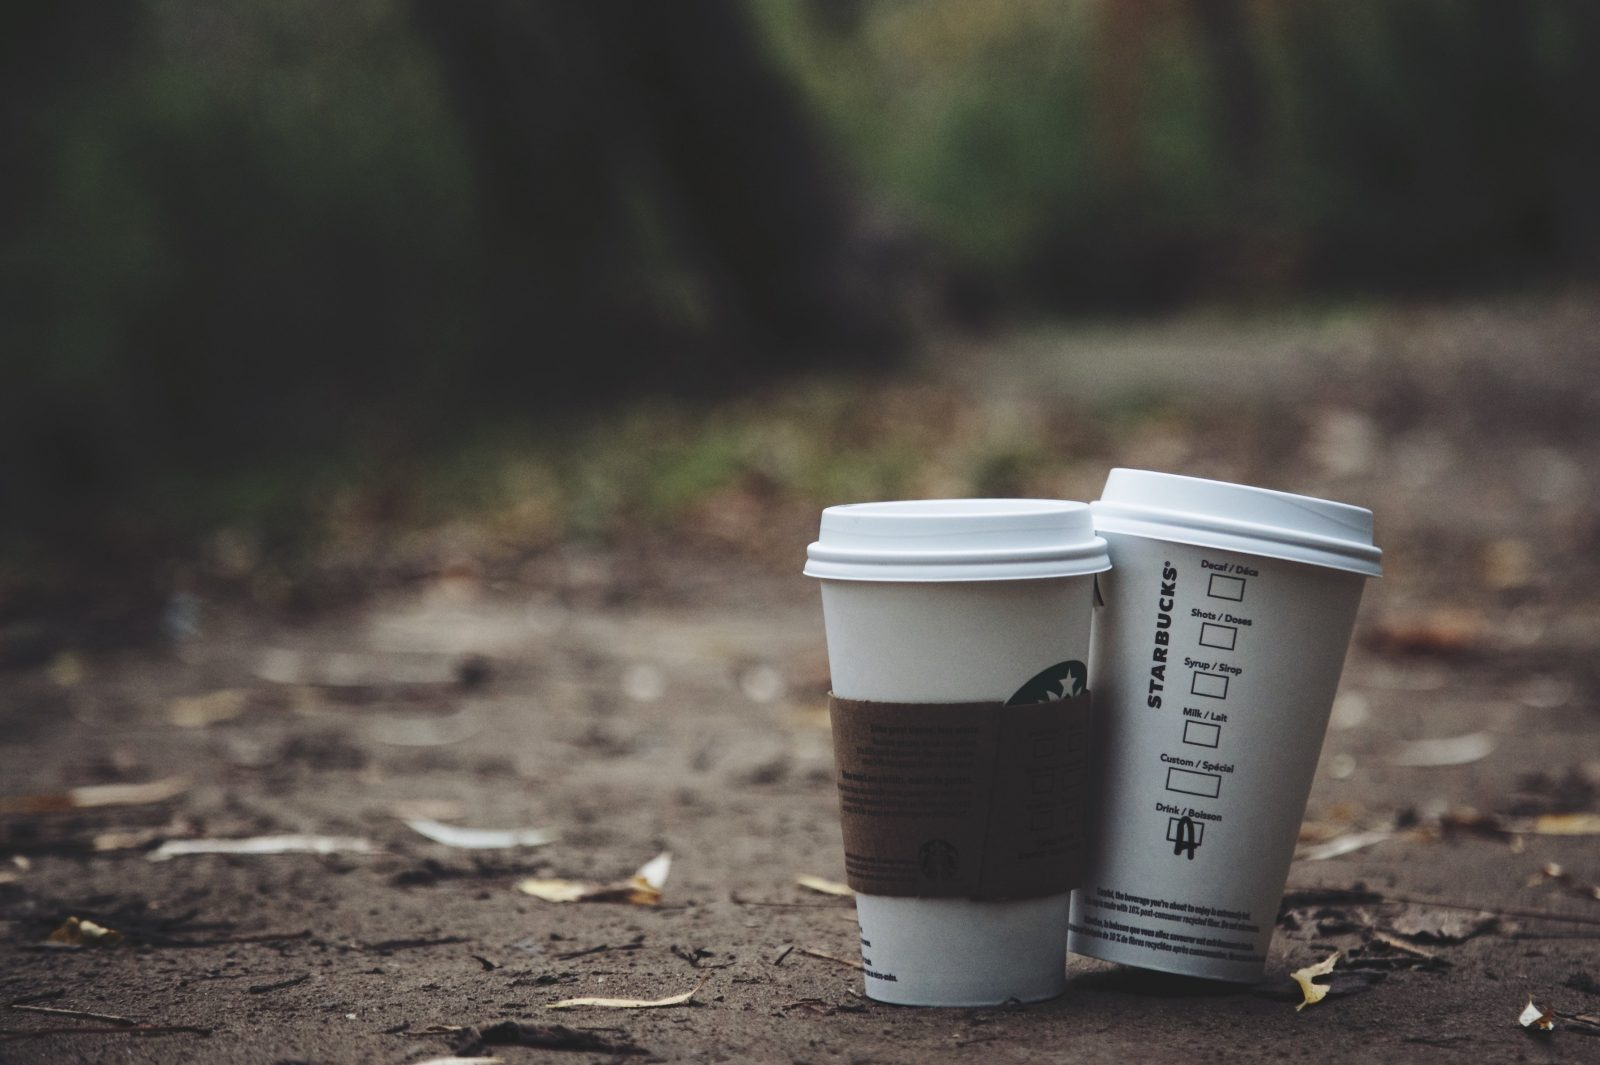 Villain of the month: Disposable coffee cups